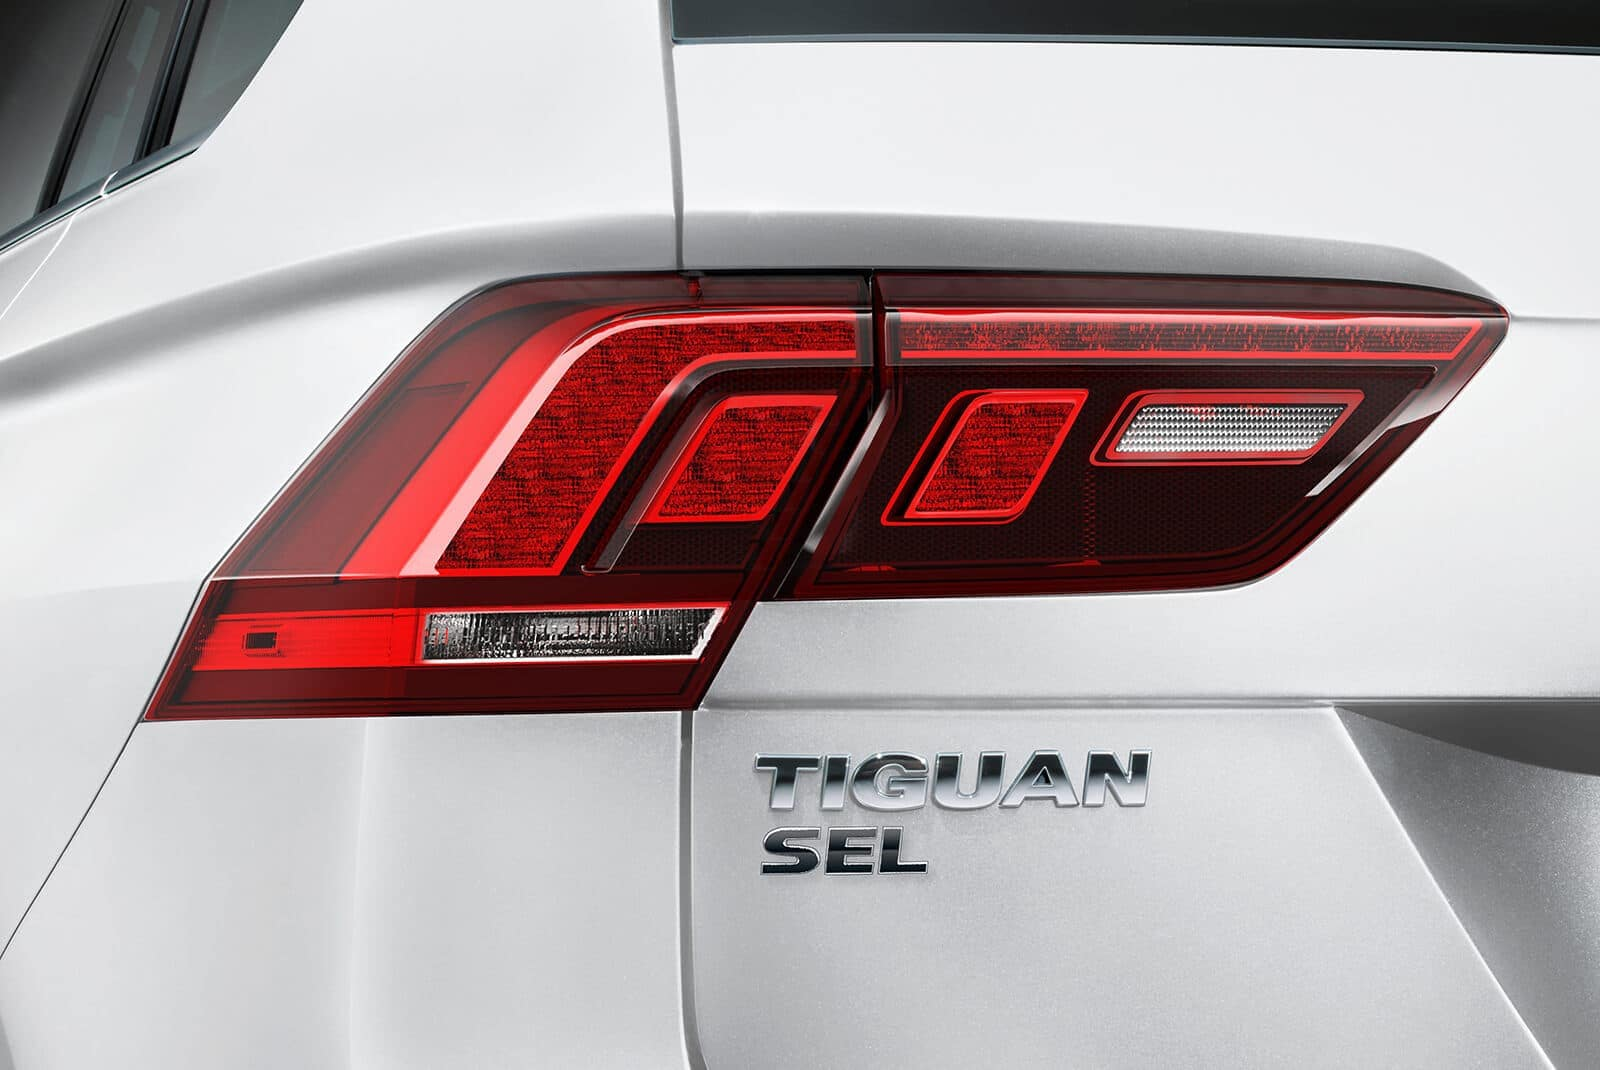 2019 Volkswagen Tiguan rear close up of LED taillights